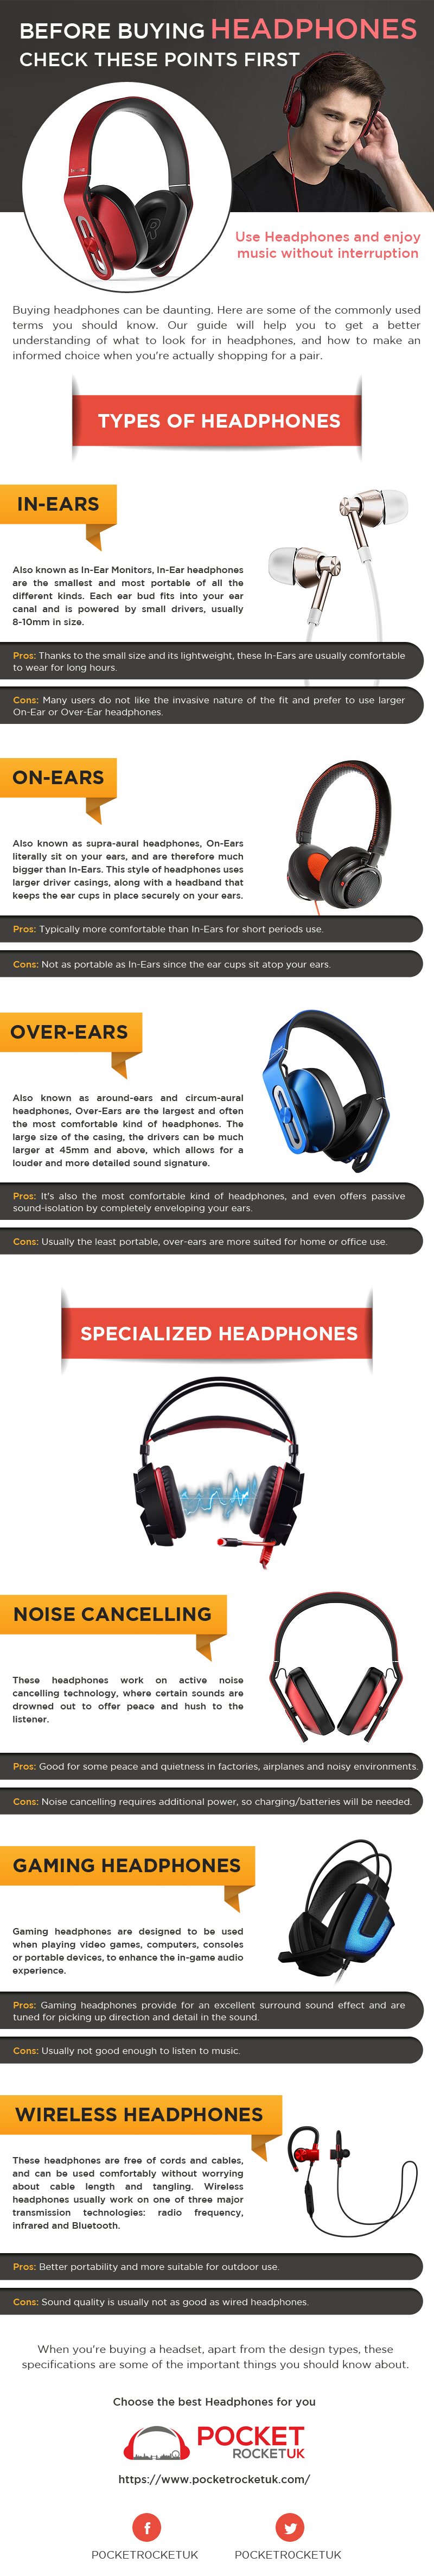 BEFORE BUYING HEADPHONES CHECK THESE POINTS FIRST [INFOGRAPHIC]